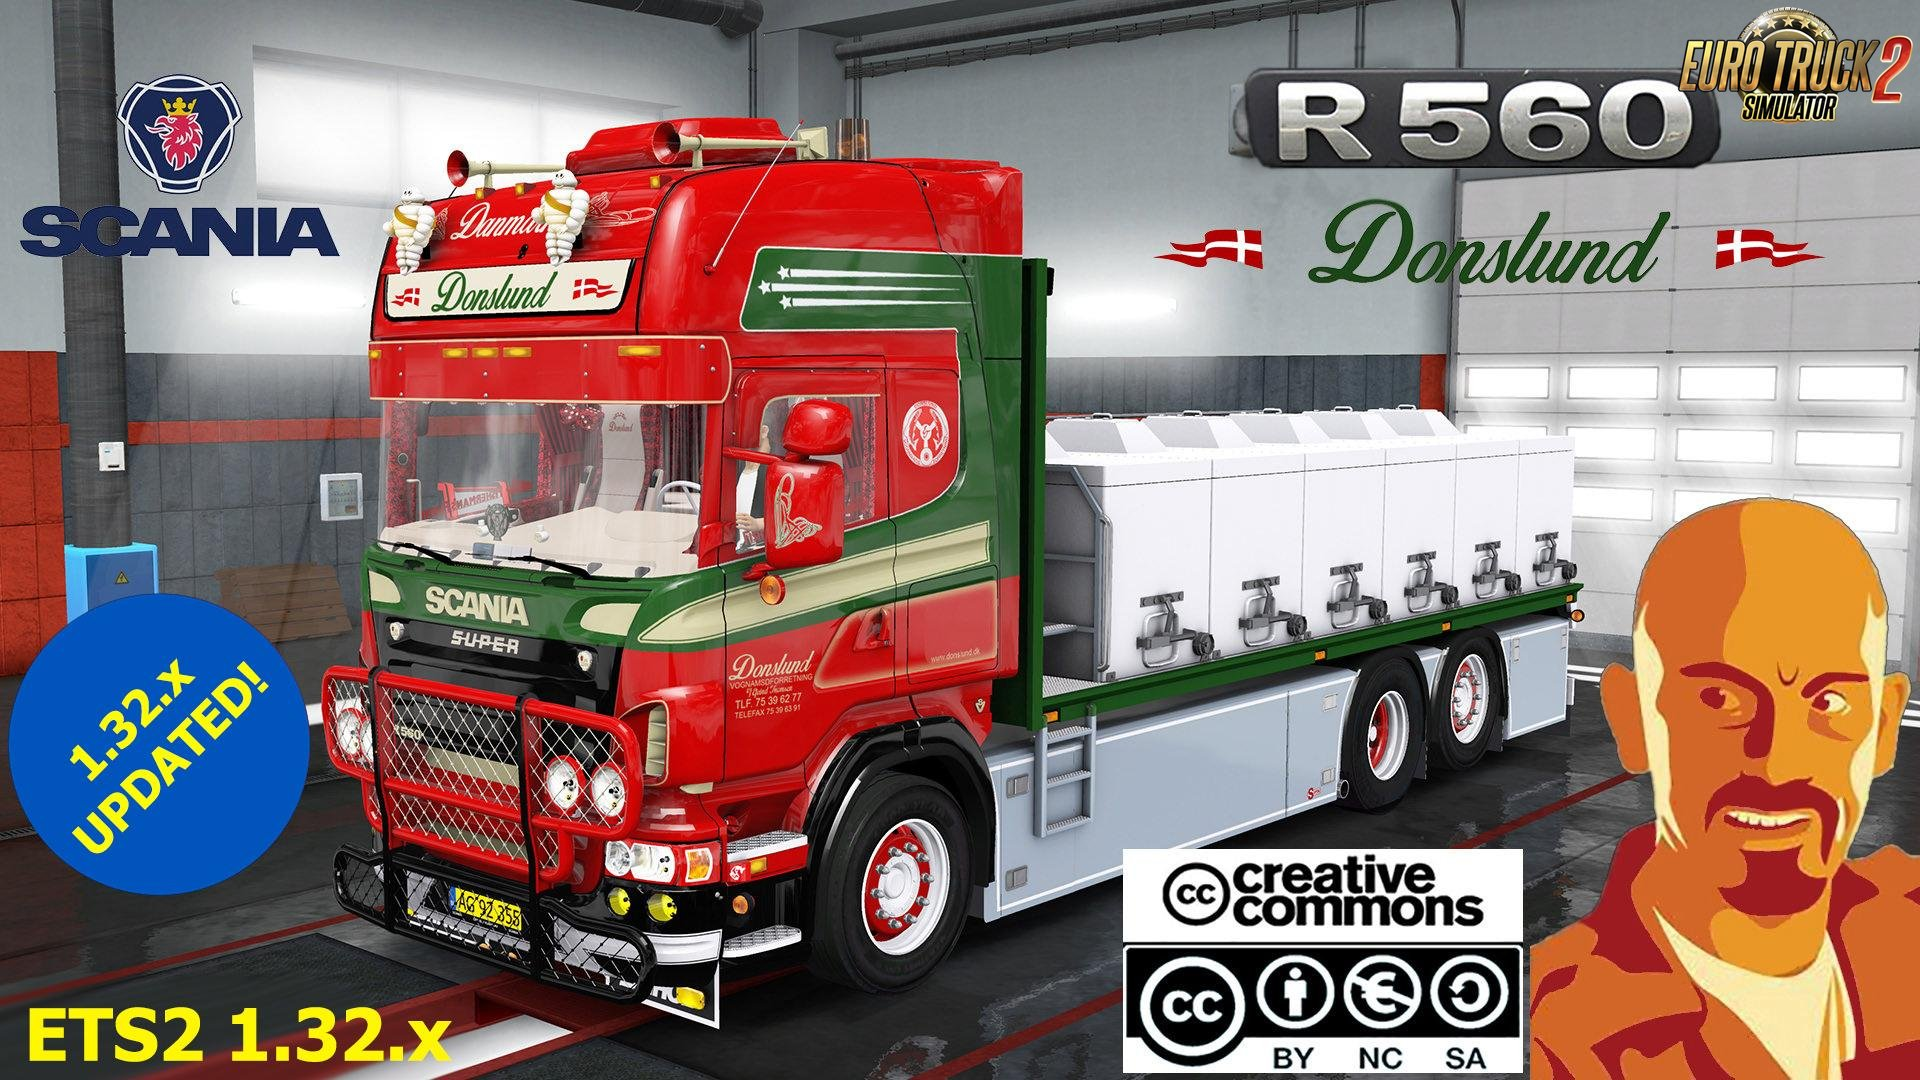 Scania Donslund and Trailer for Ets2 (1.32.x)